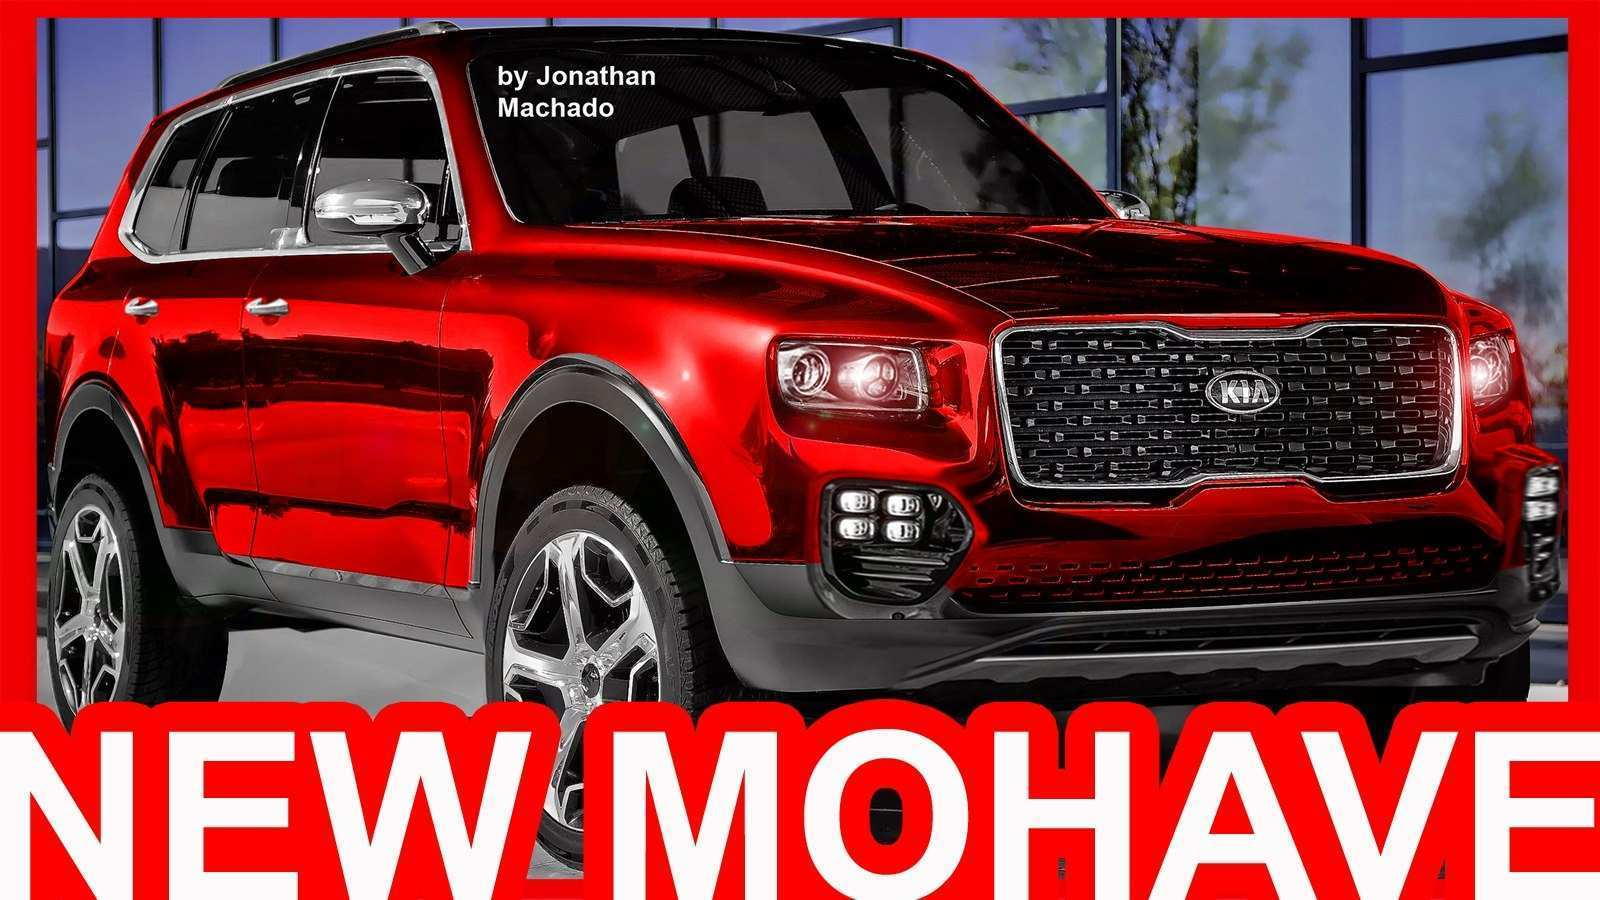 79 A 2020 Kia Mohave New Review